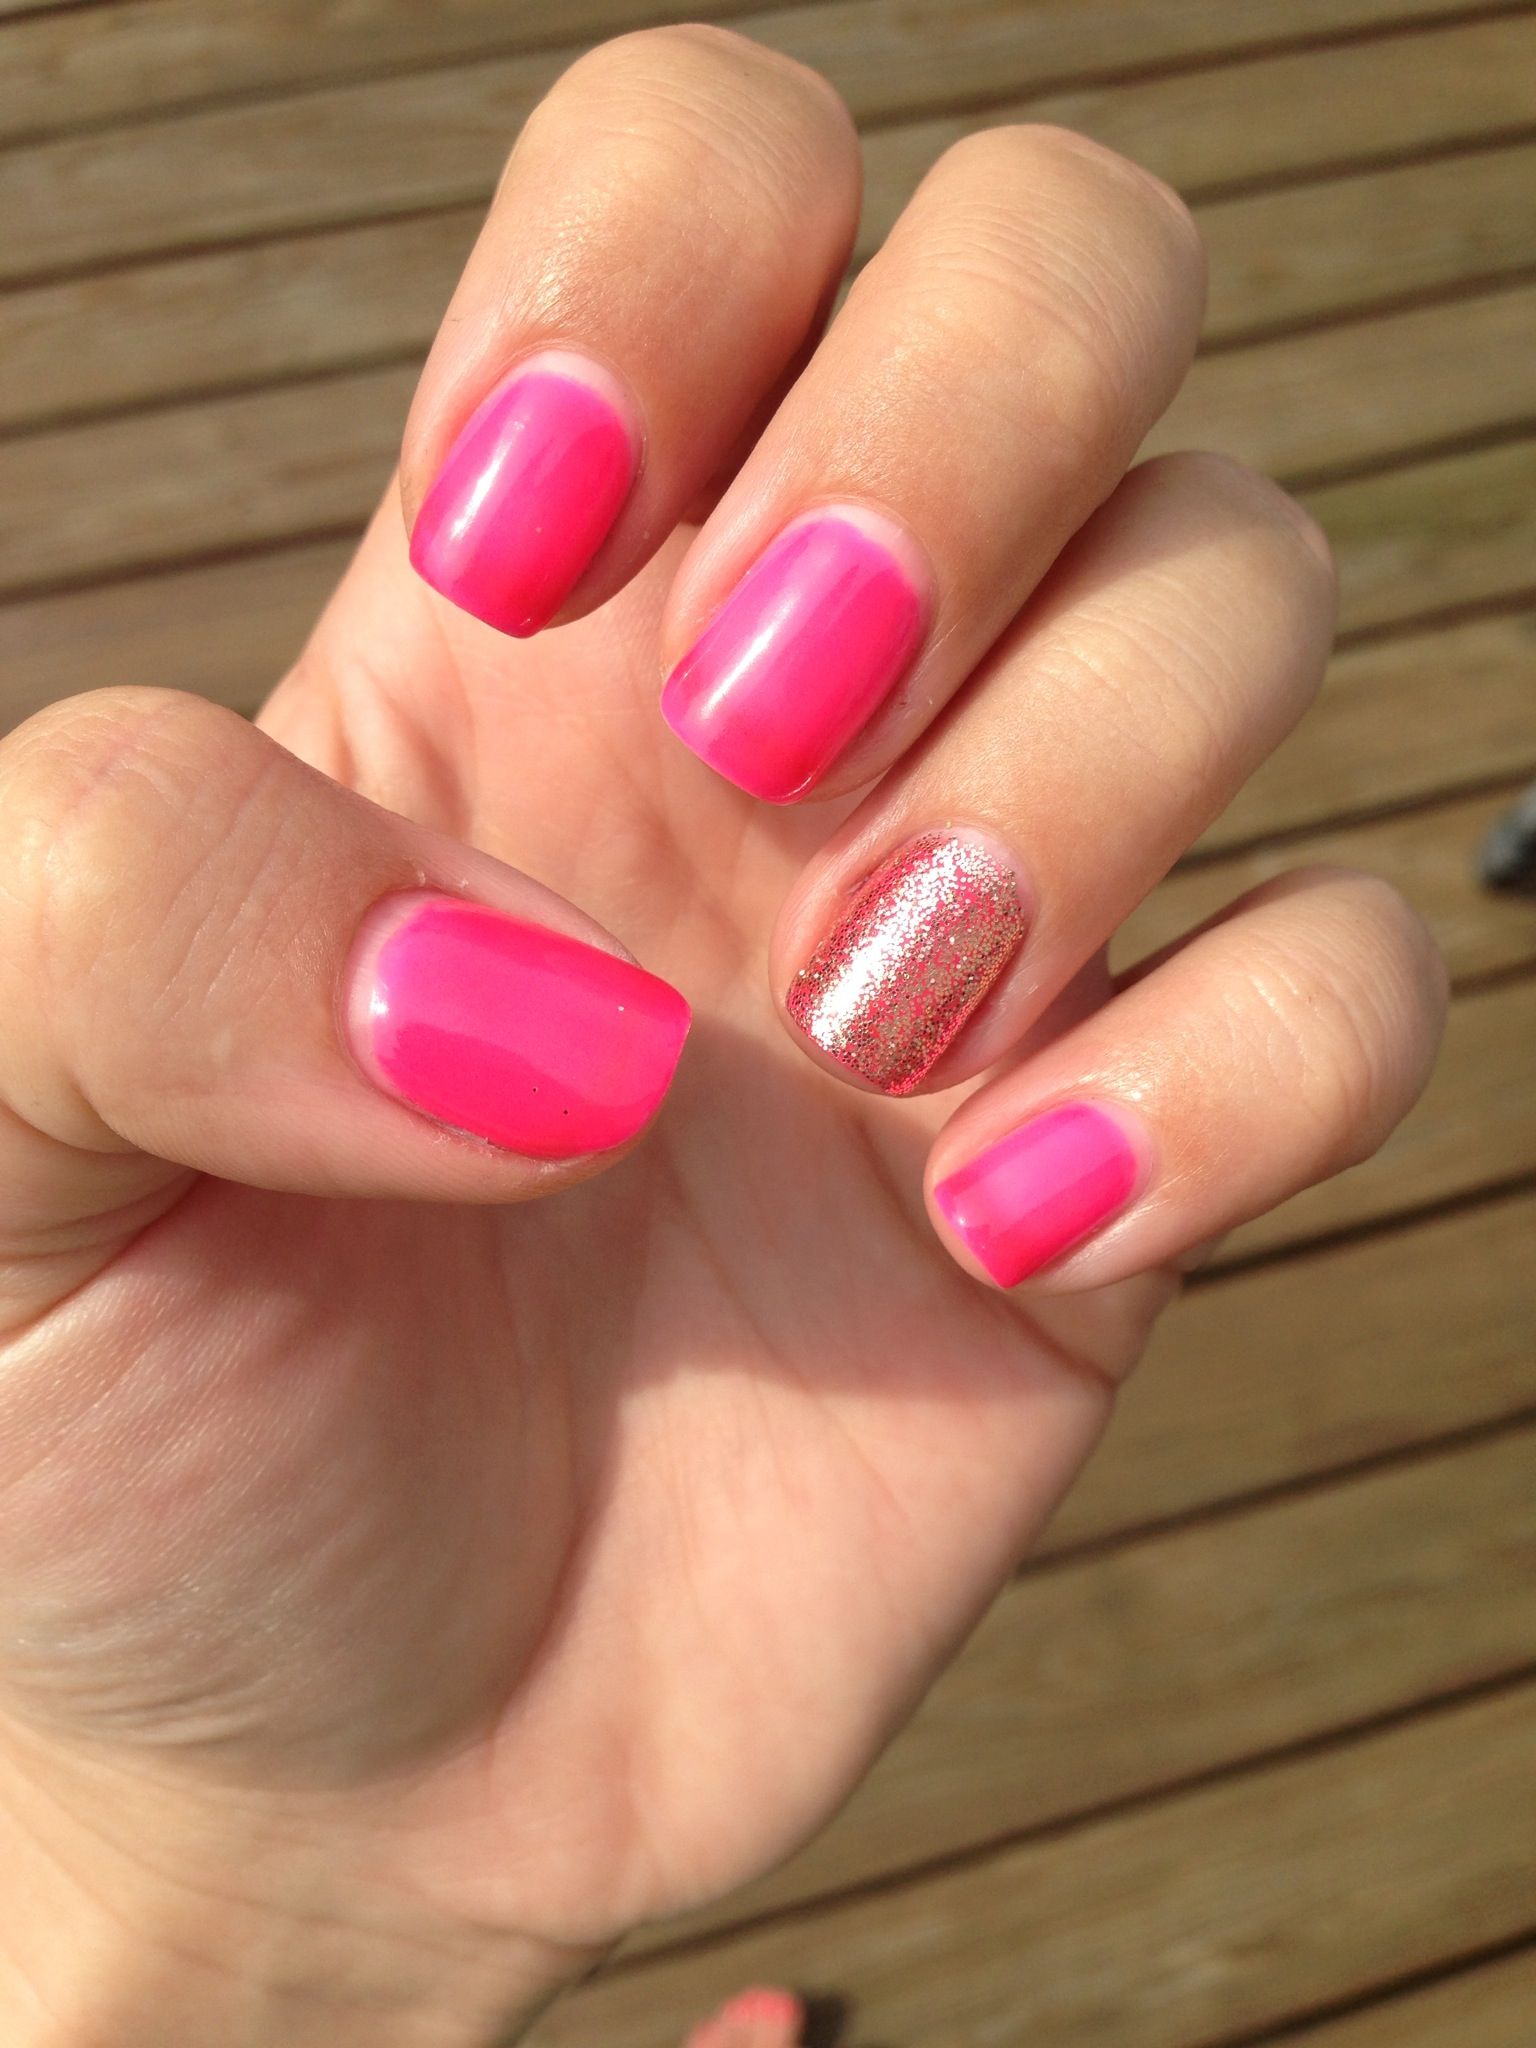 Neon pink Red Carpet Manicure at home no chip | My Nails | Pinterest ...